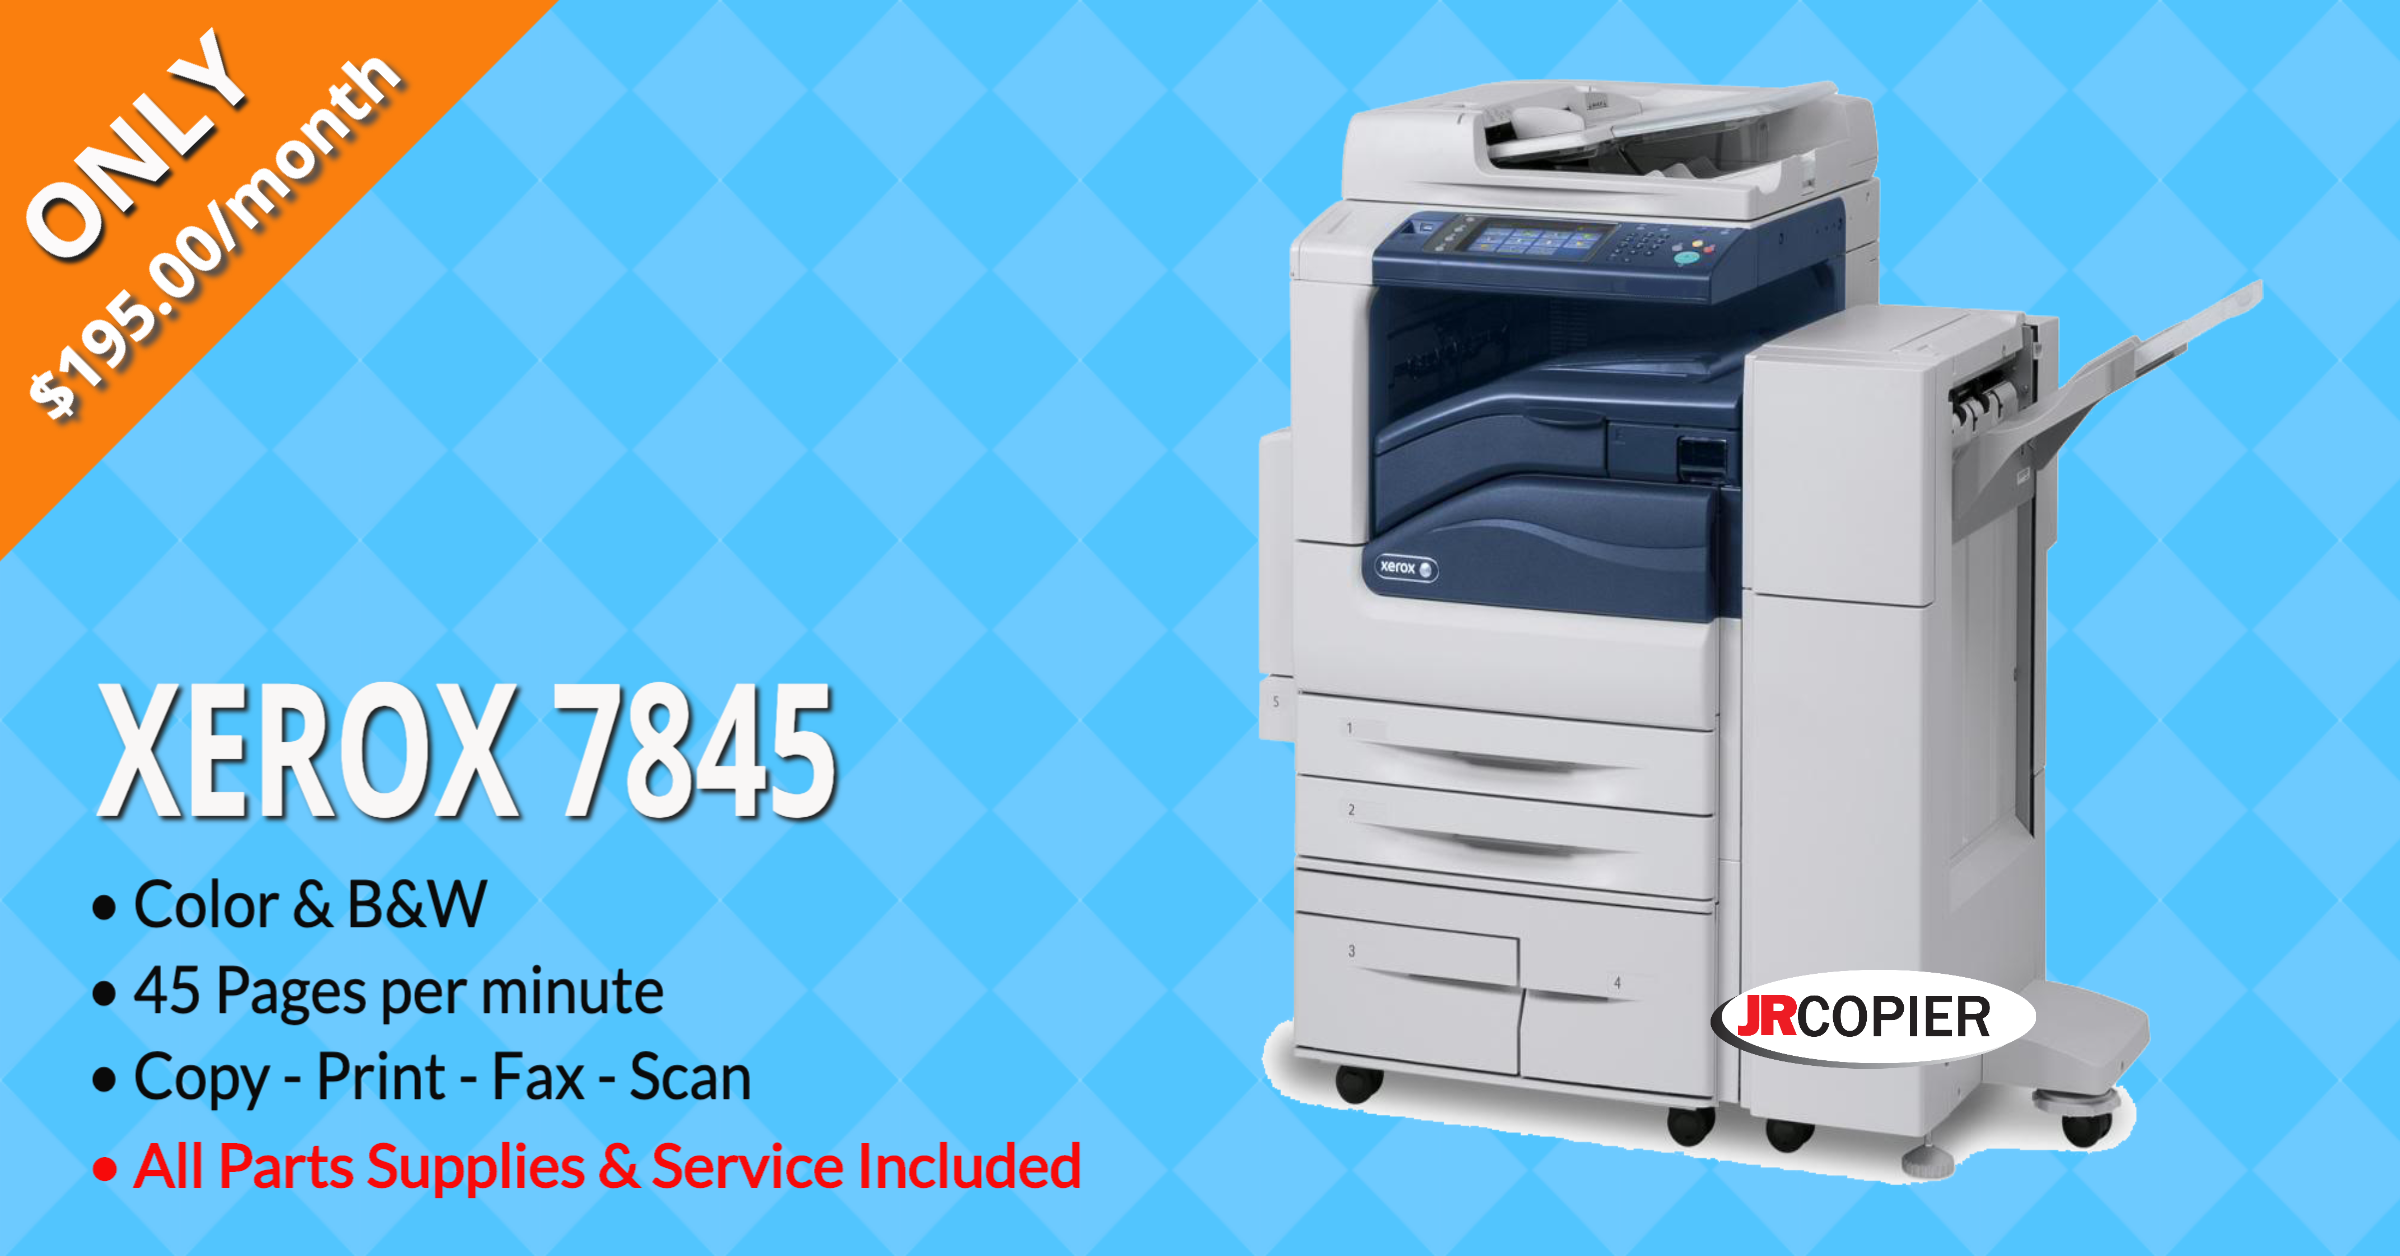 Copy Machine Companies 95928, 95938, 95958, 95965